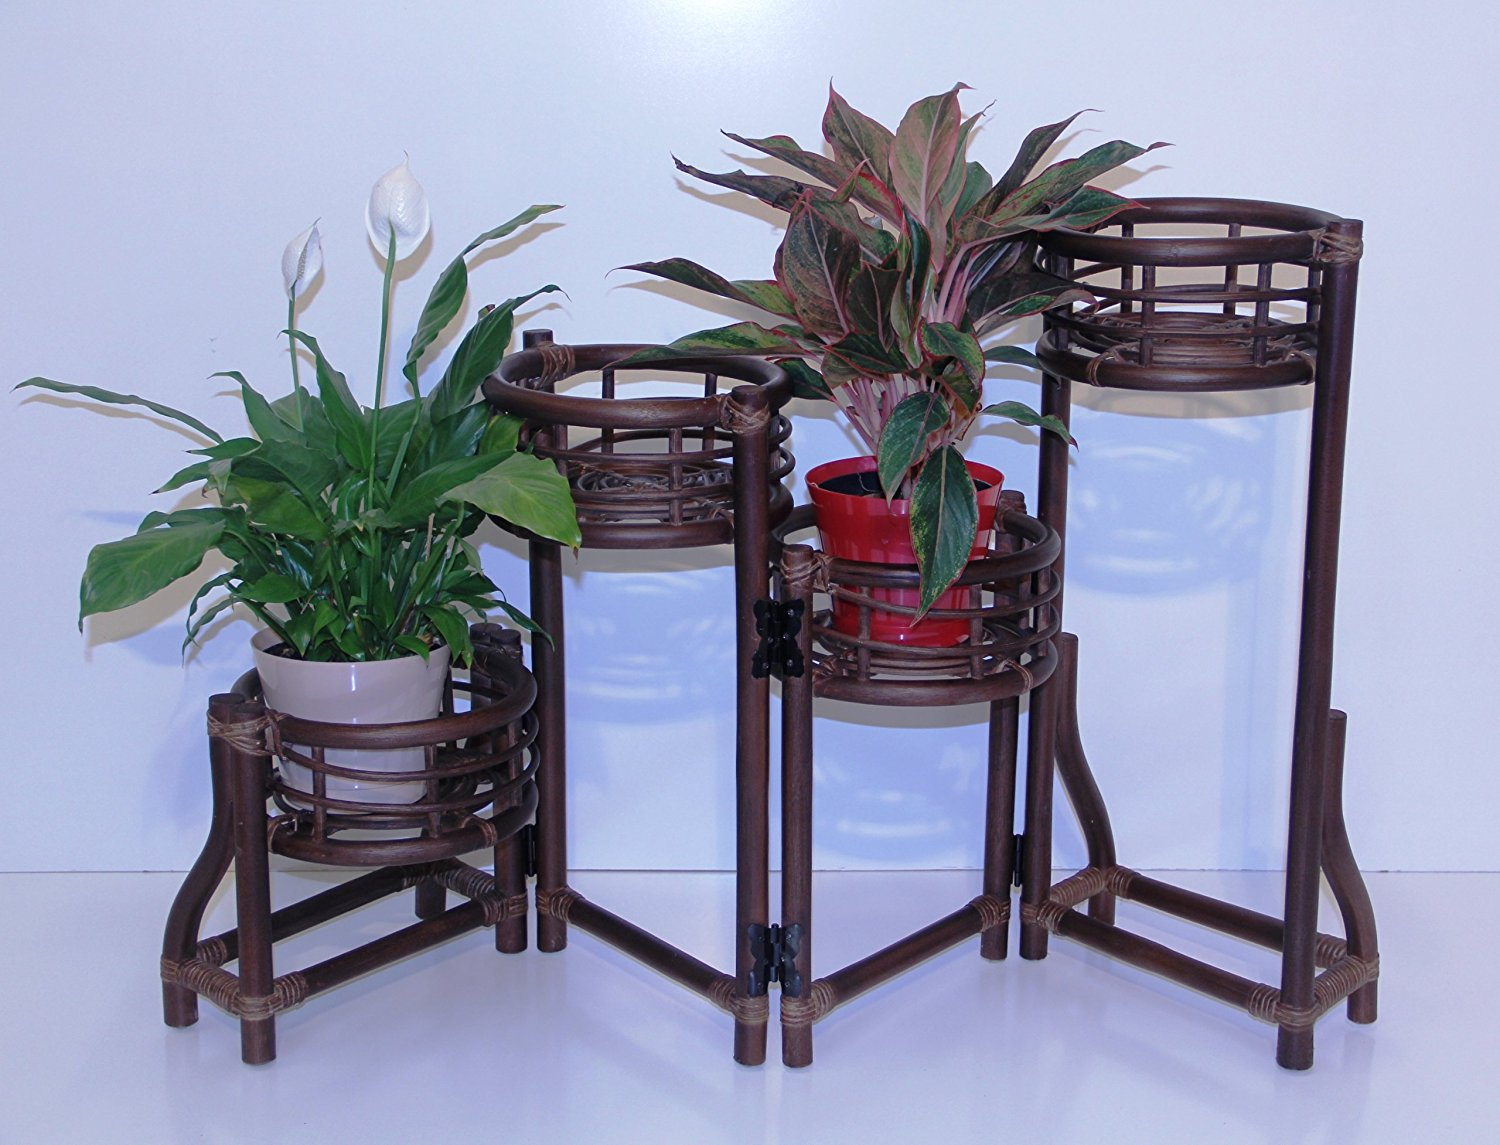 comfortable wicker chairs bin bag chair buy plant stand (4 tier) in usa, best price, free shipping - rattan usa